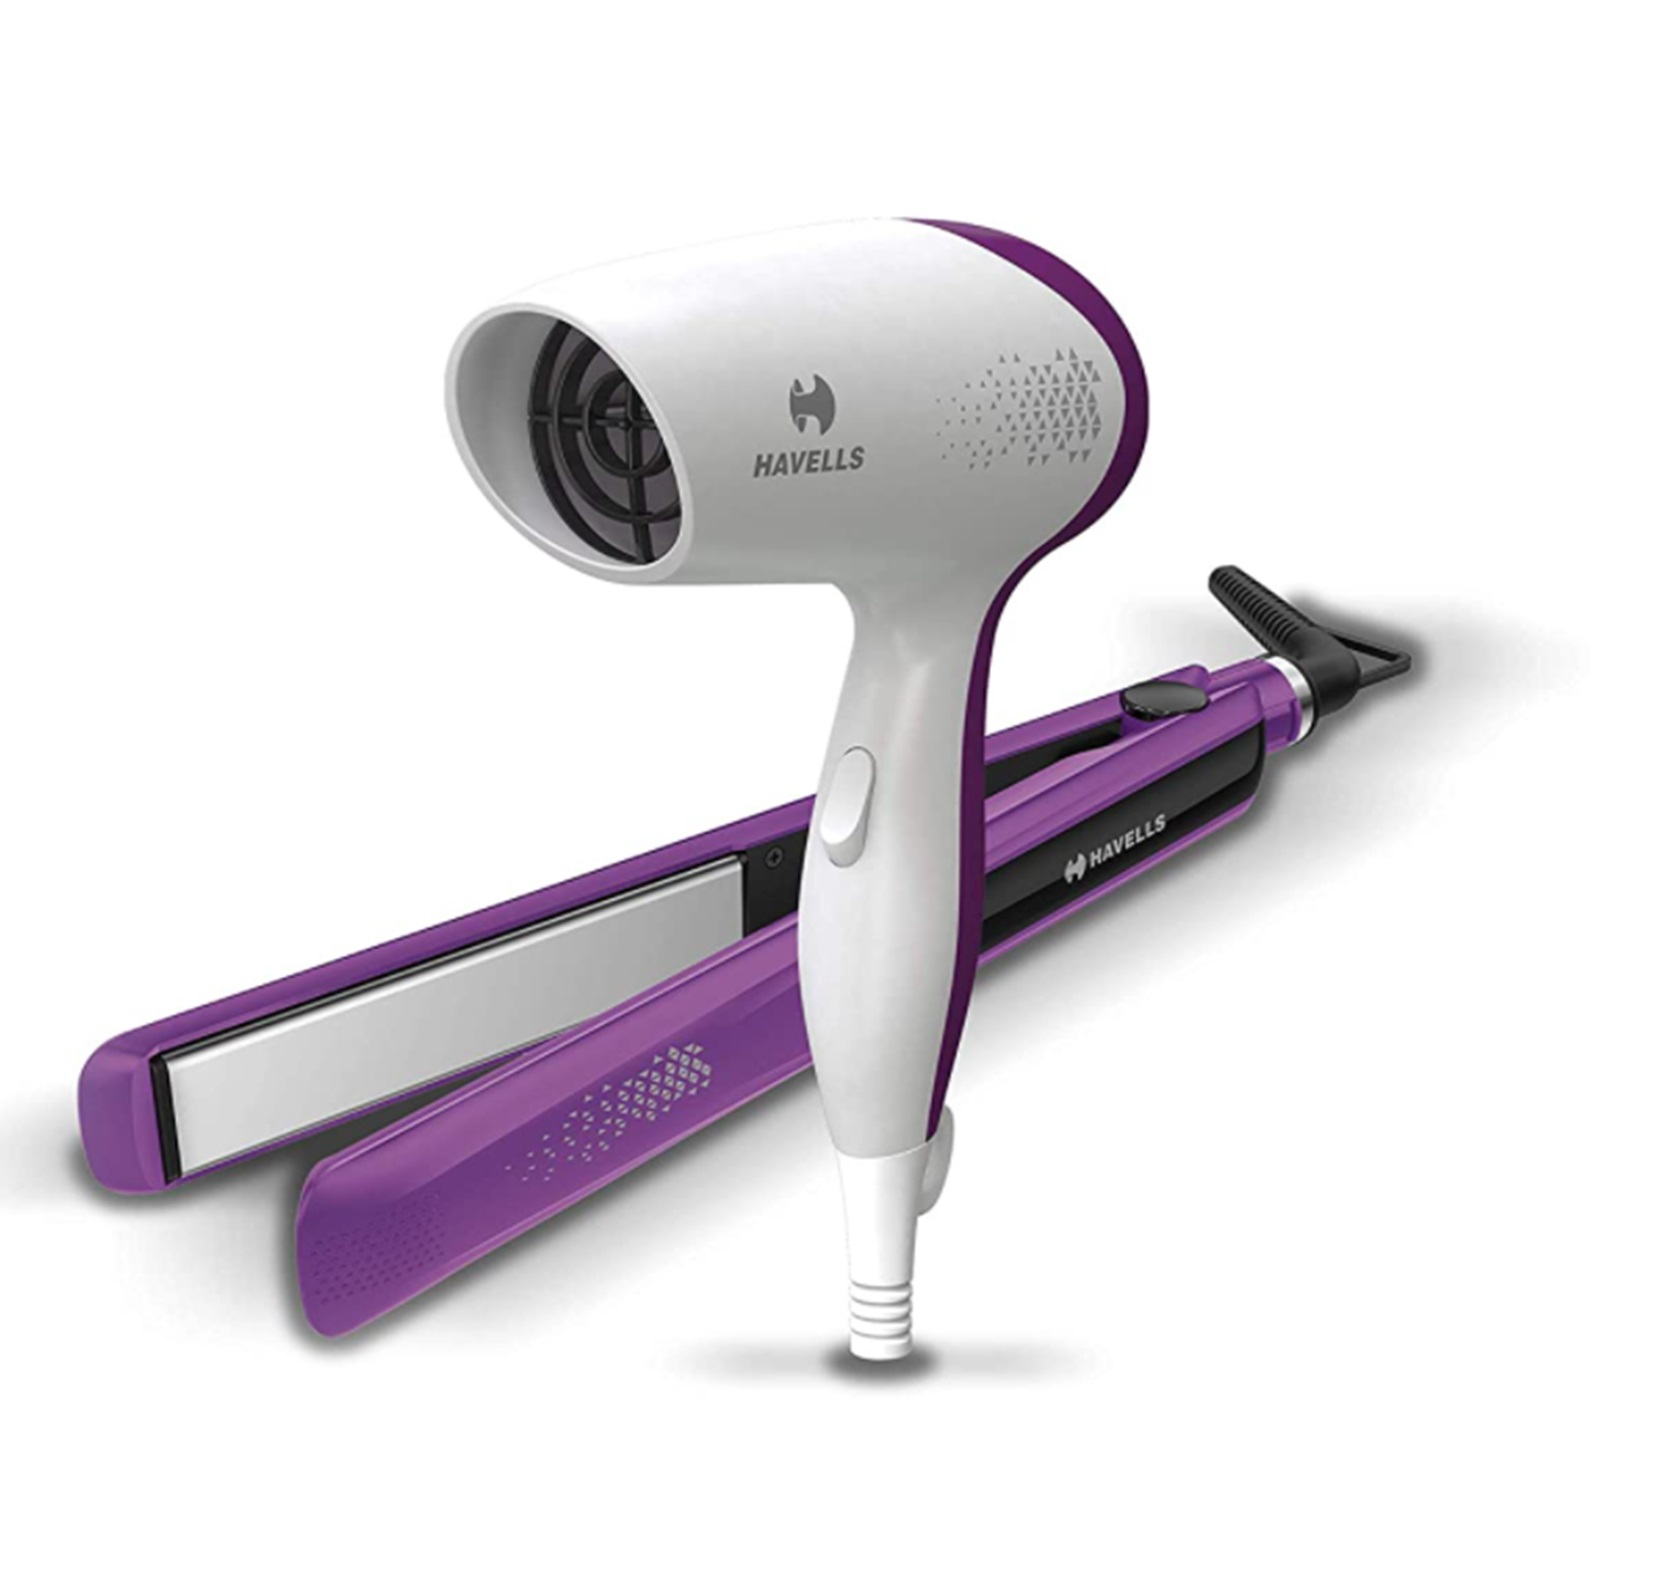 Havells HC4025 Combo Dryer+ Straightener Travel Friendly with Ionic Care for Healthy/ Shiny Hair Purple by Rmr JaiHind